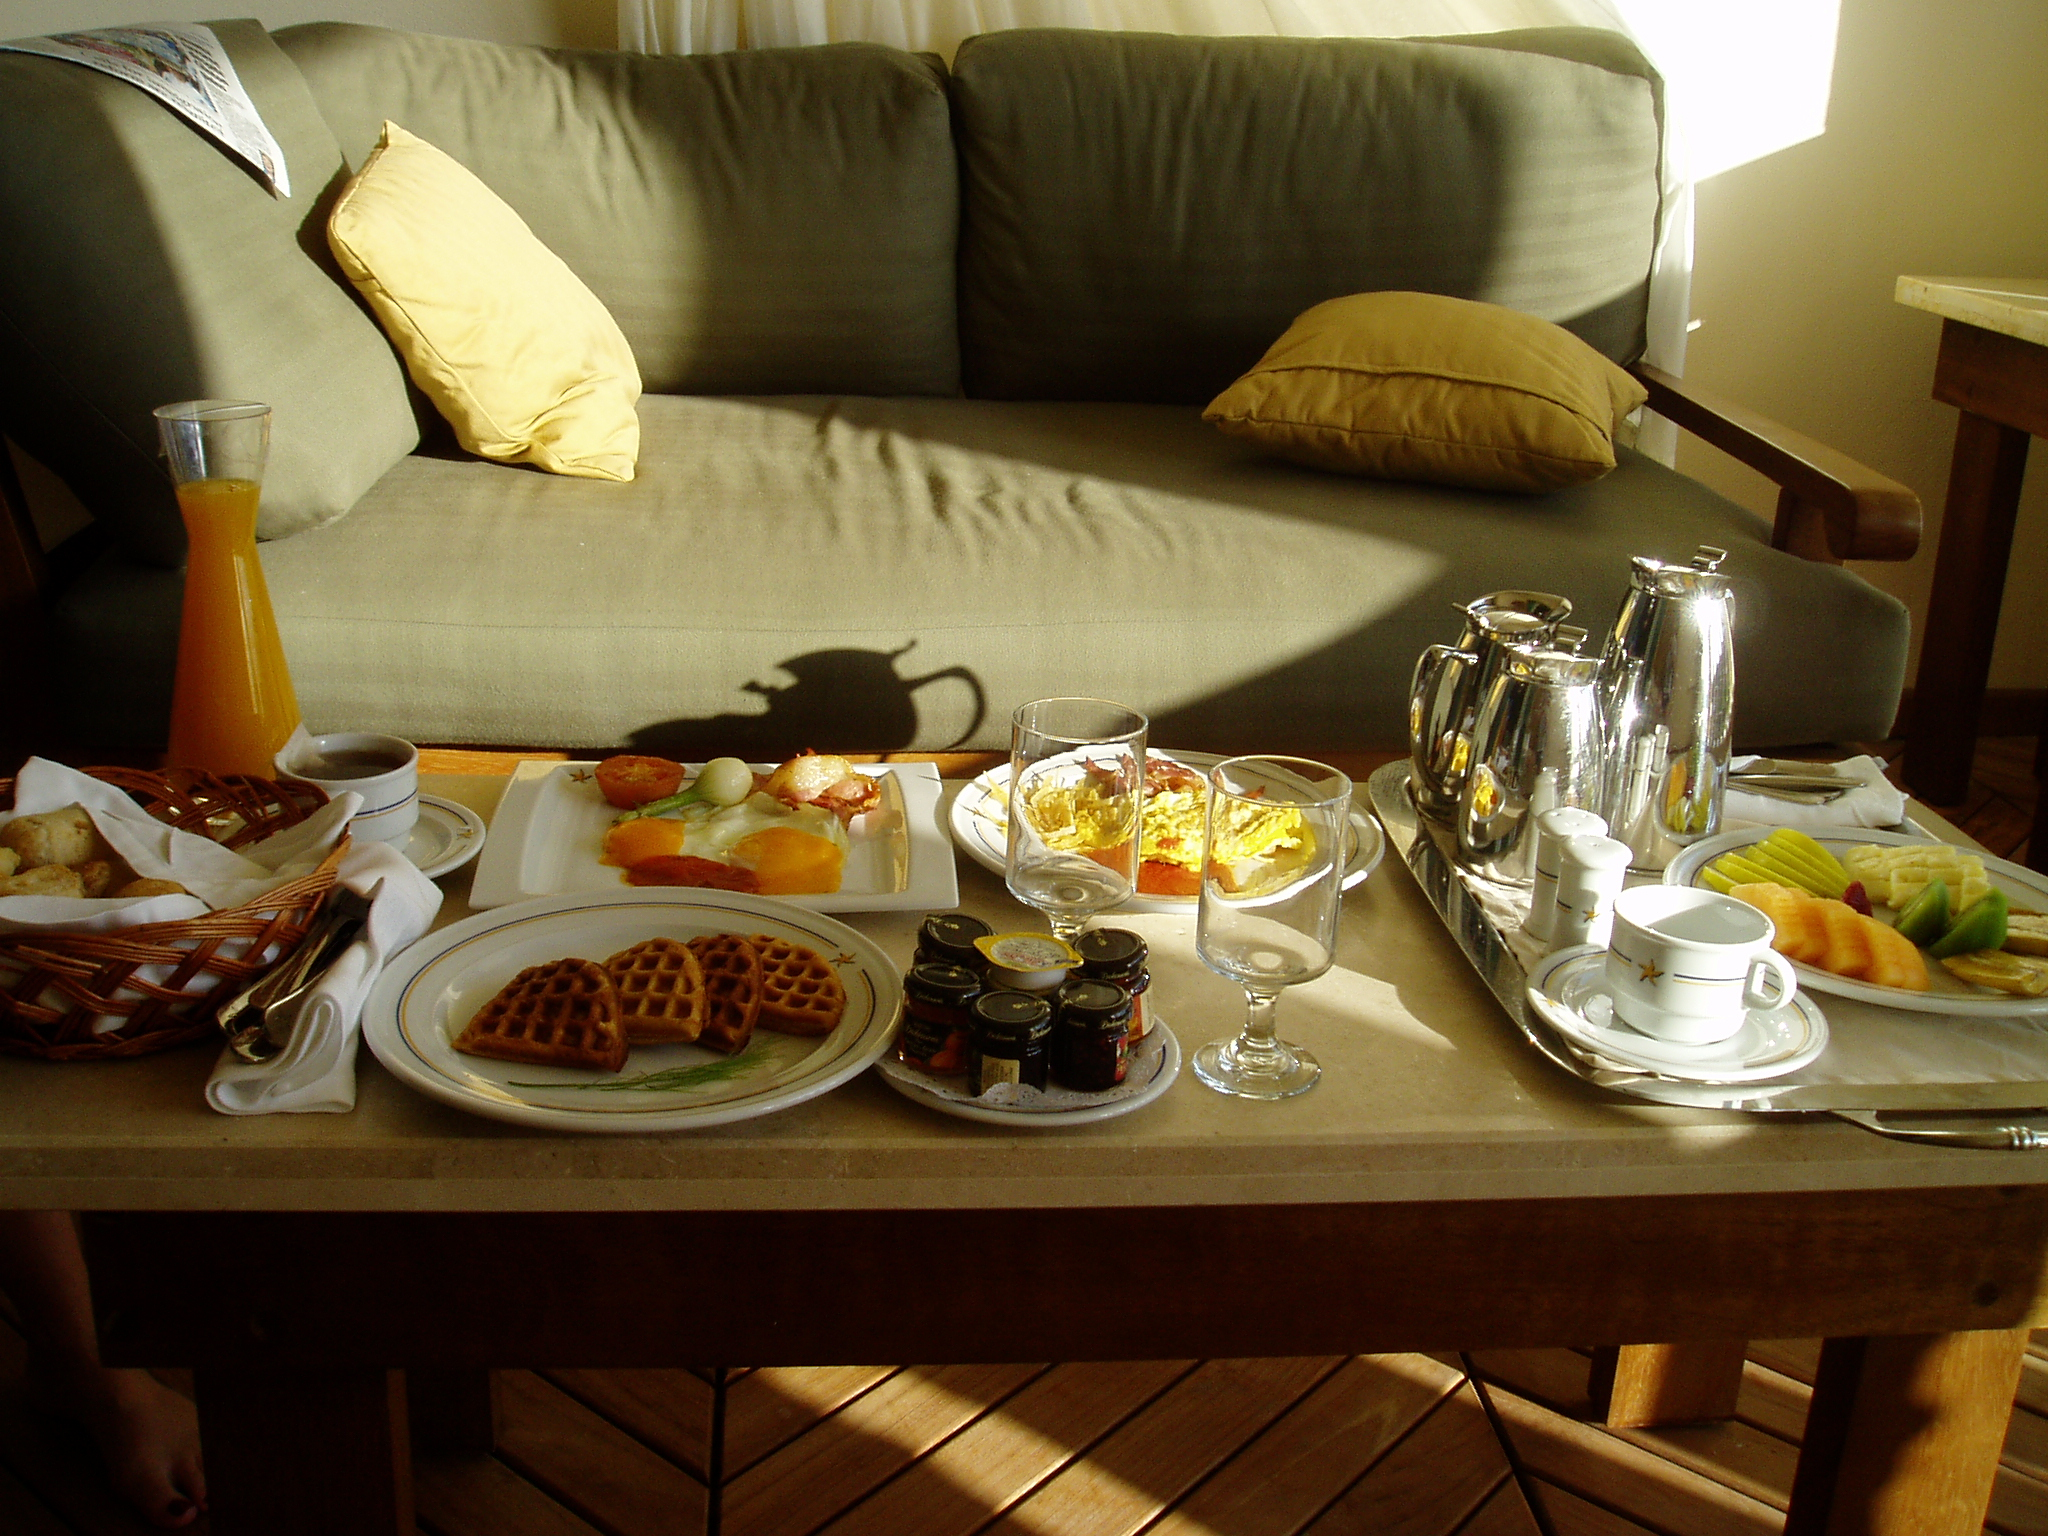 Room Service: Room Service Breakfast And The Secret Menu For Lunch